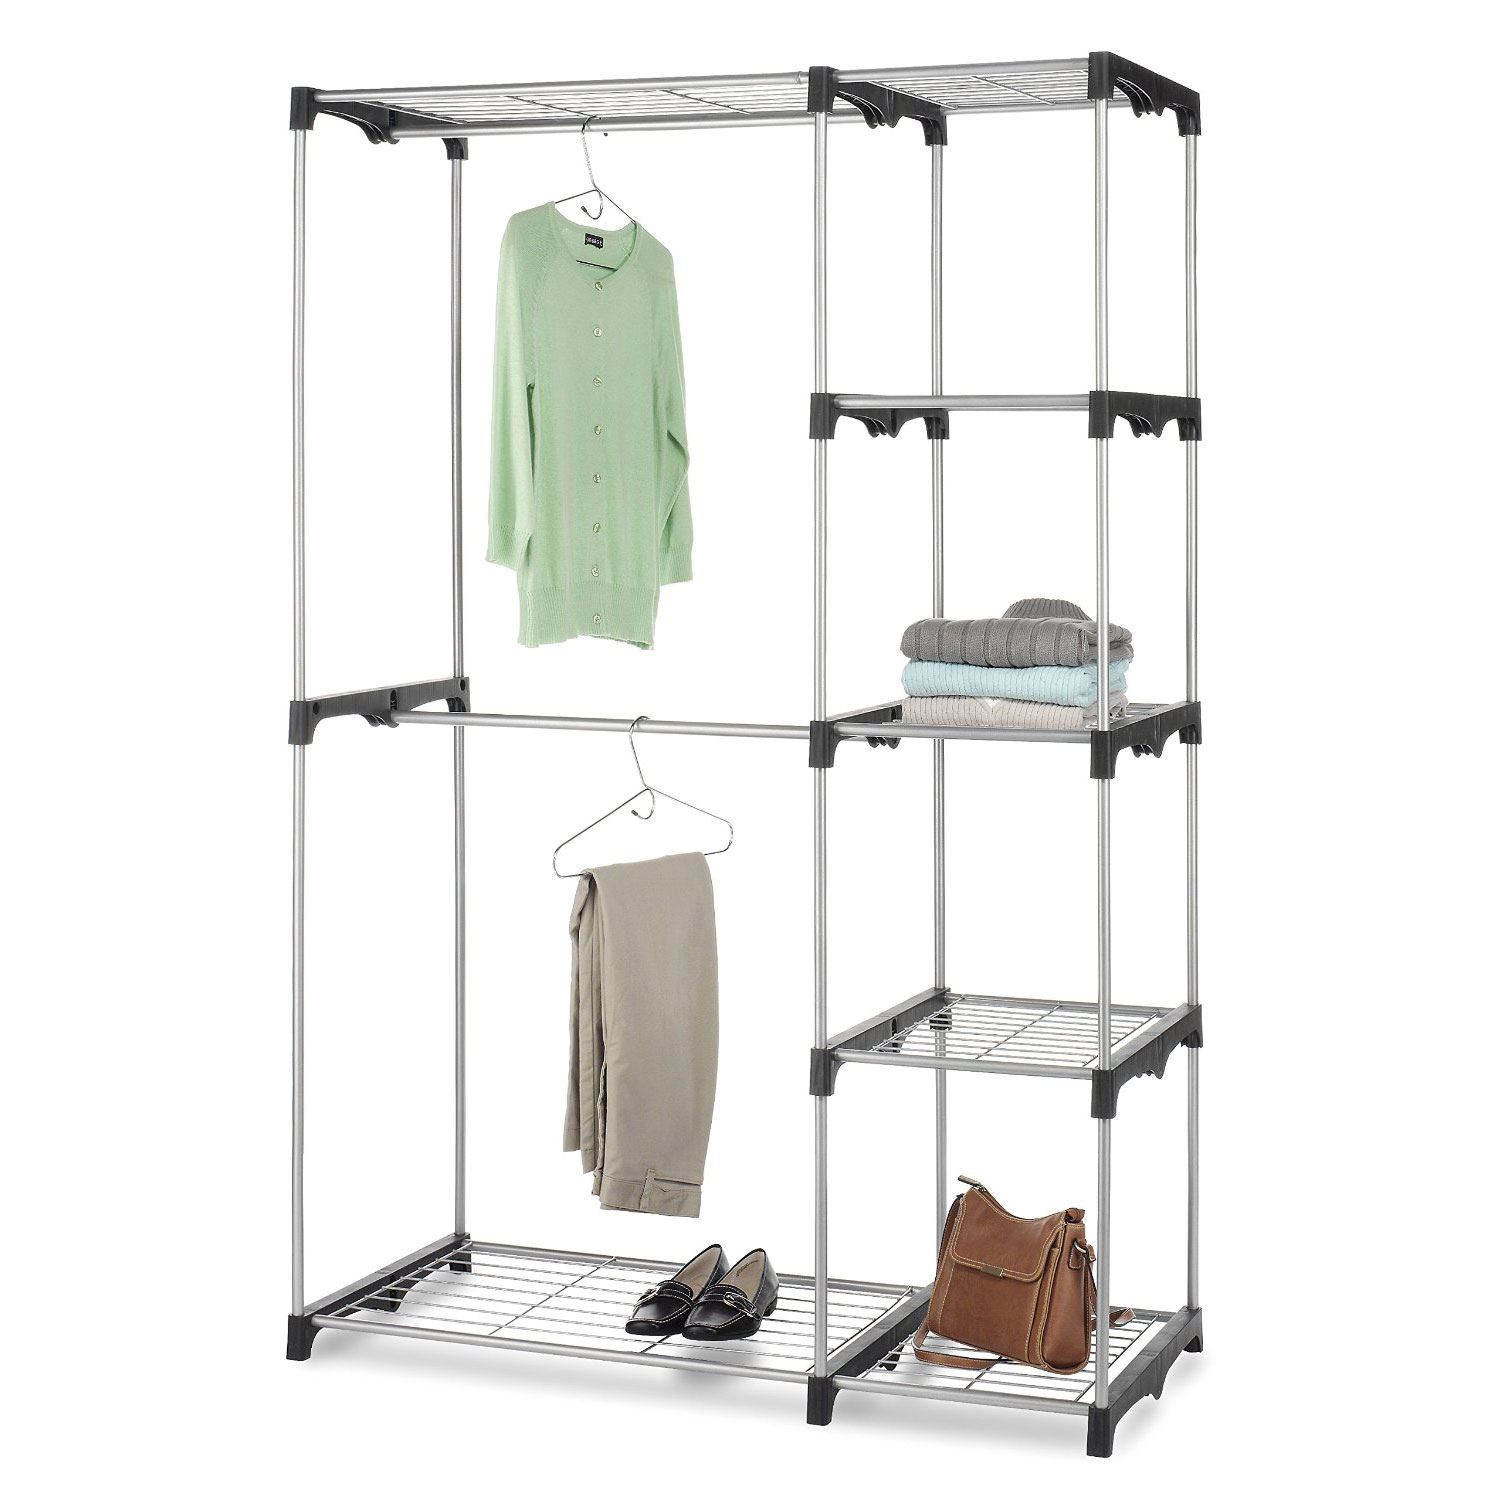 rack richards product homewares garden chrome home garment standing shipping commercial clothes free storage today overstock